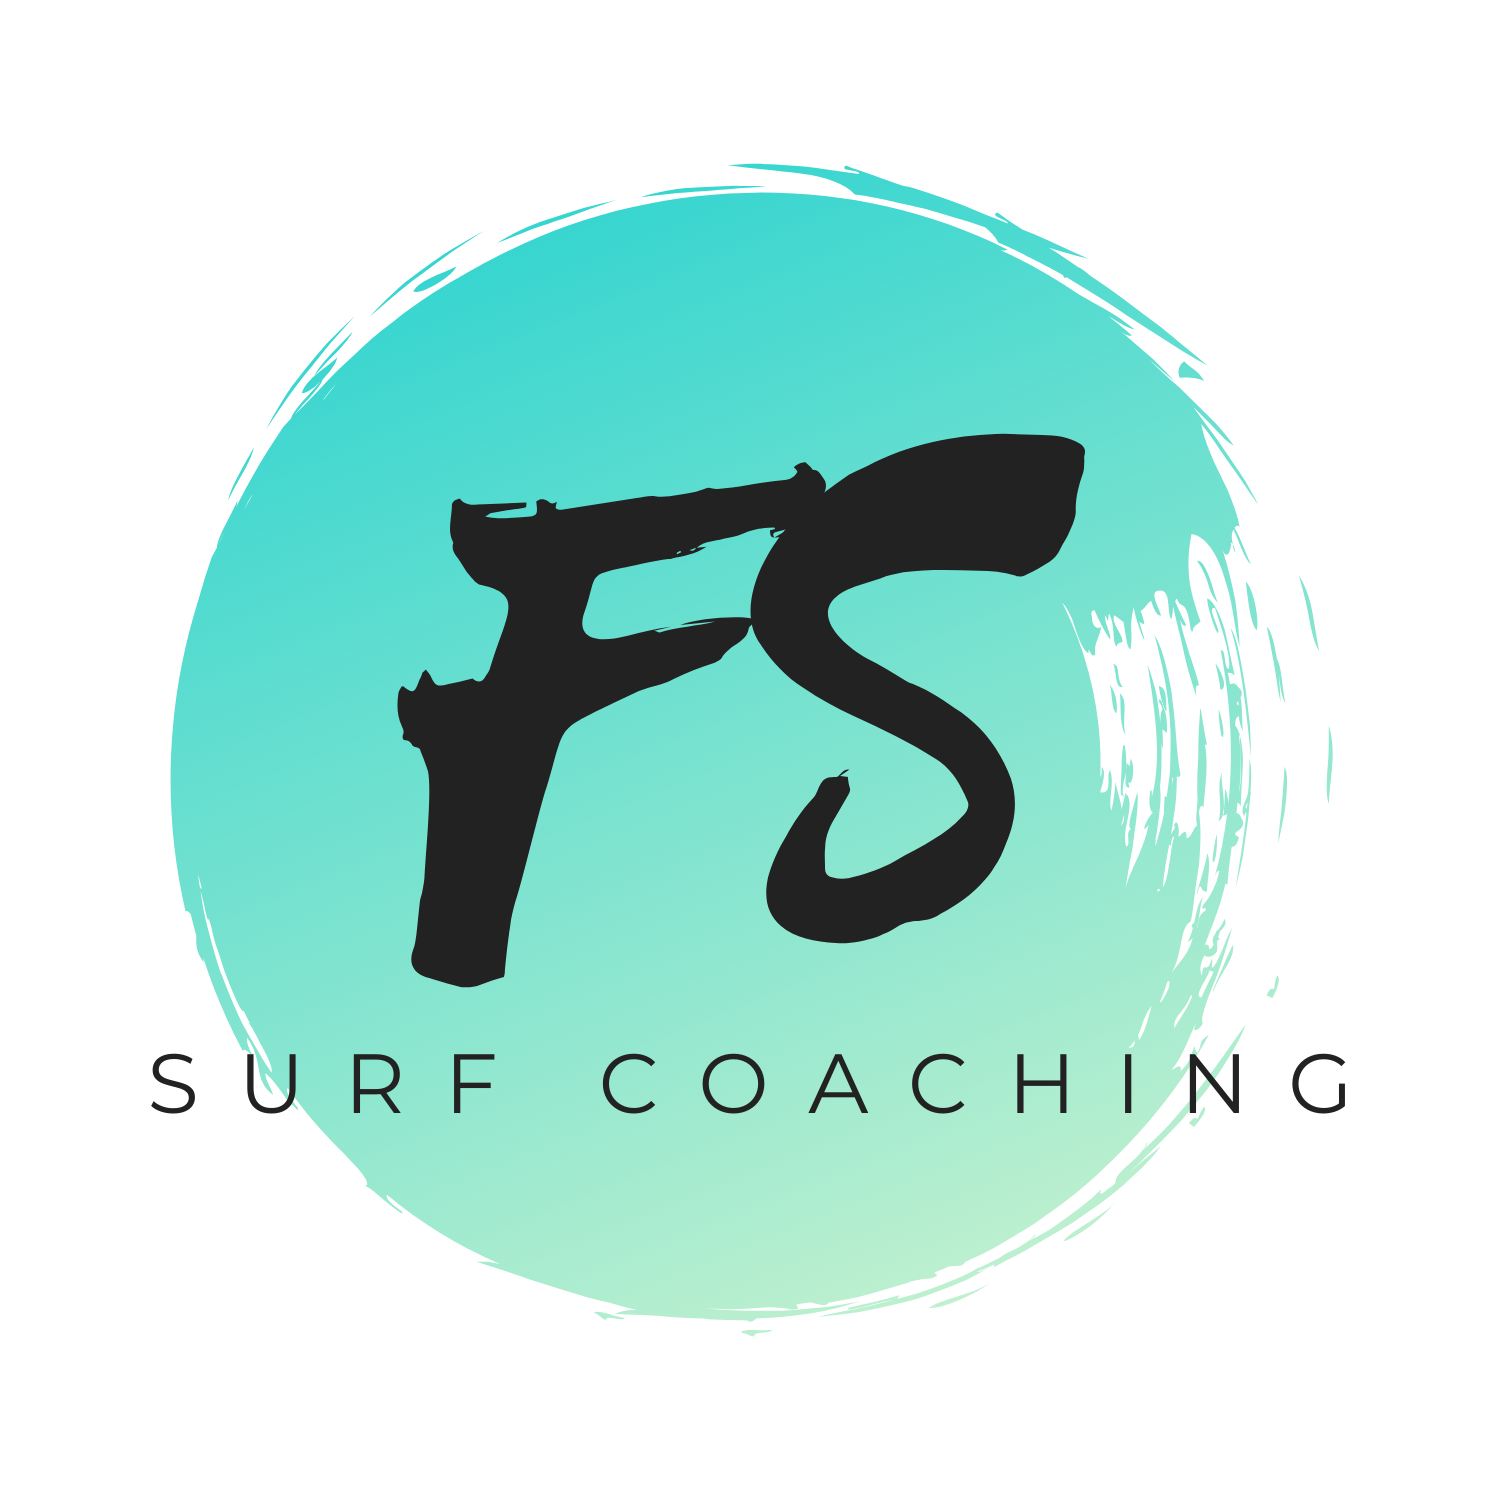 FS SURF COACHING